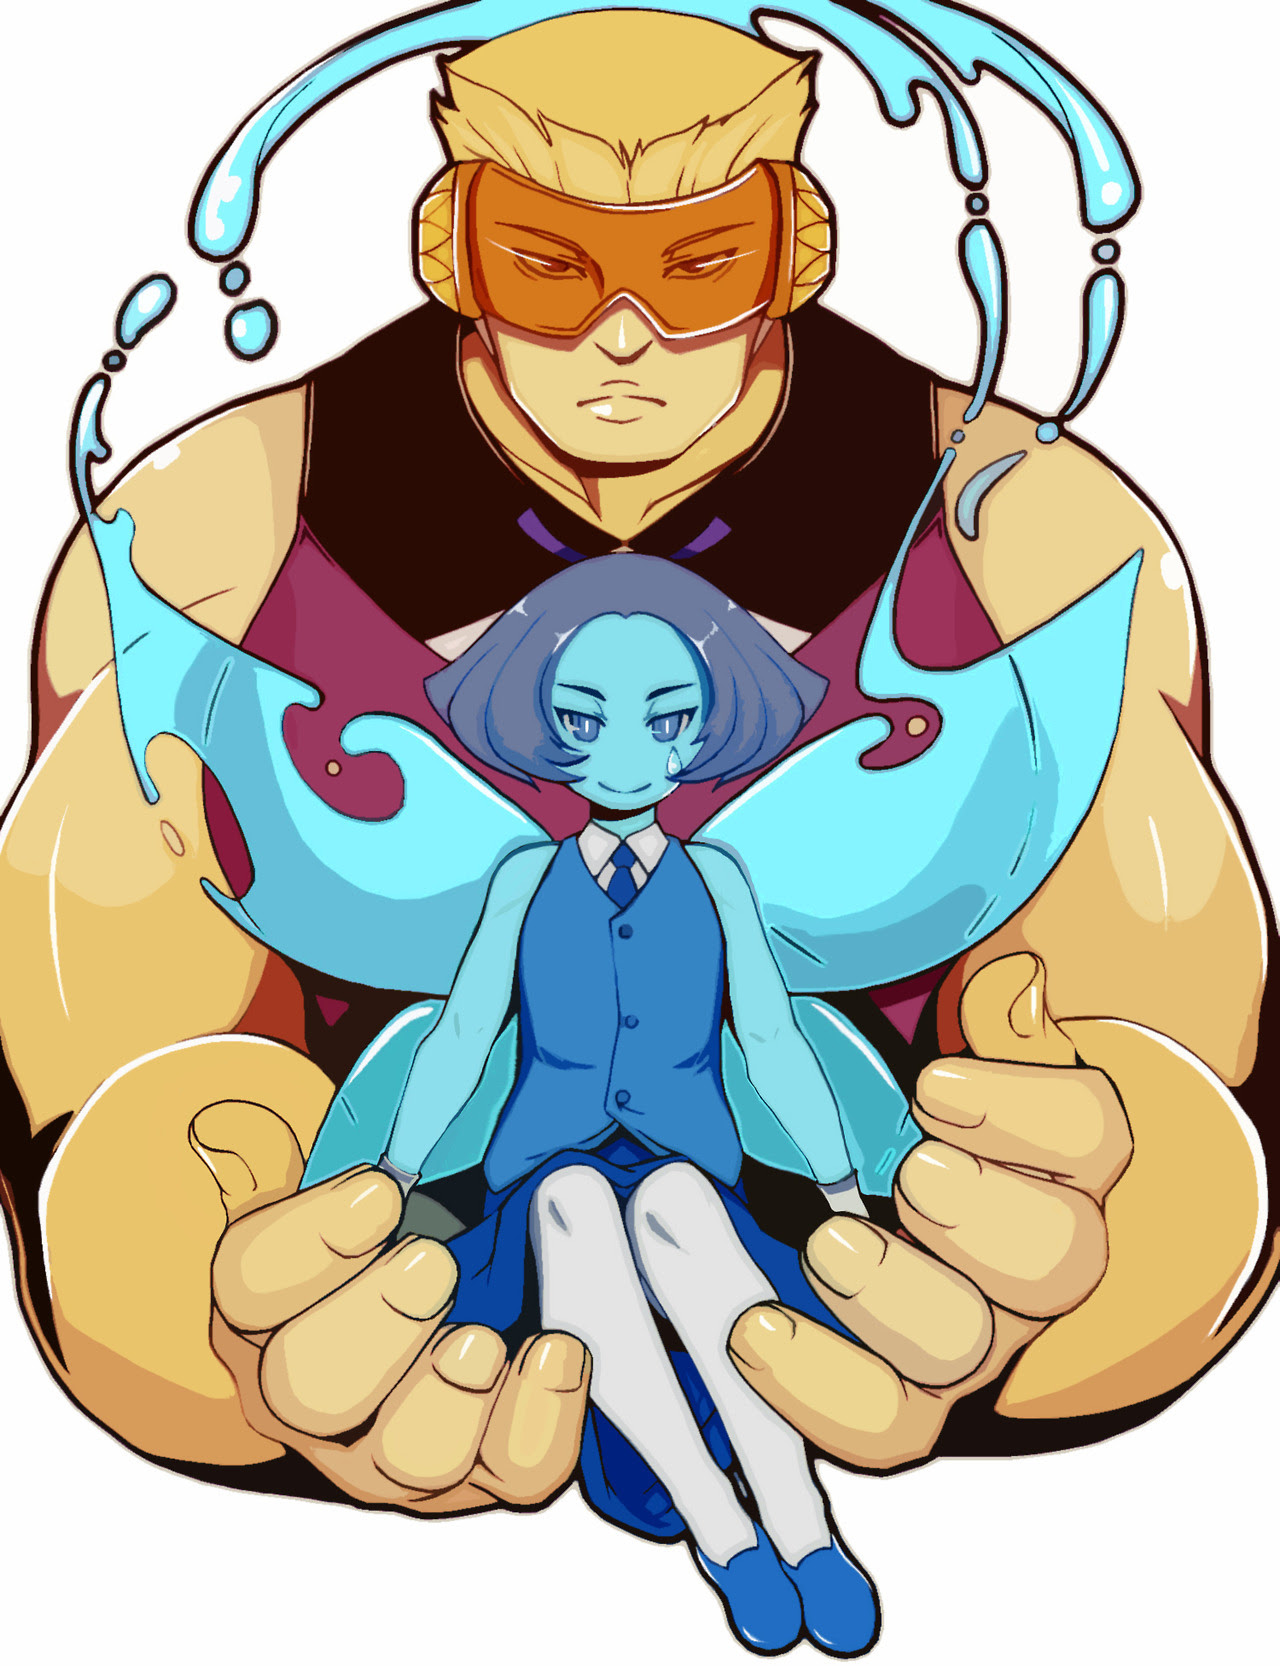 A drawing of Aquamarine and Topaz from the recent episodes of Steven Universe.